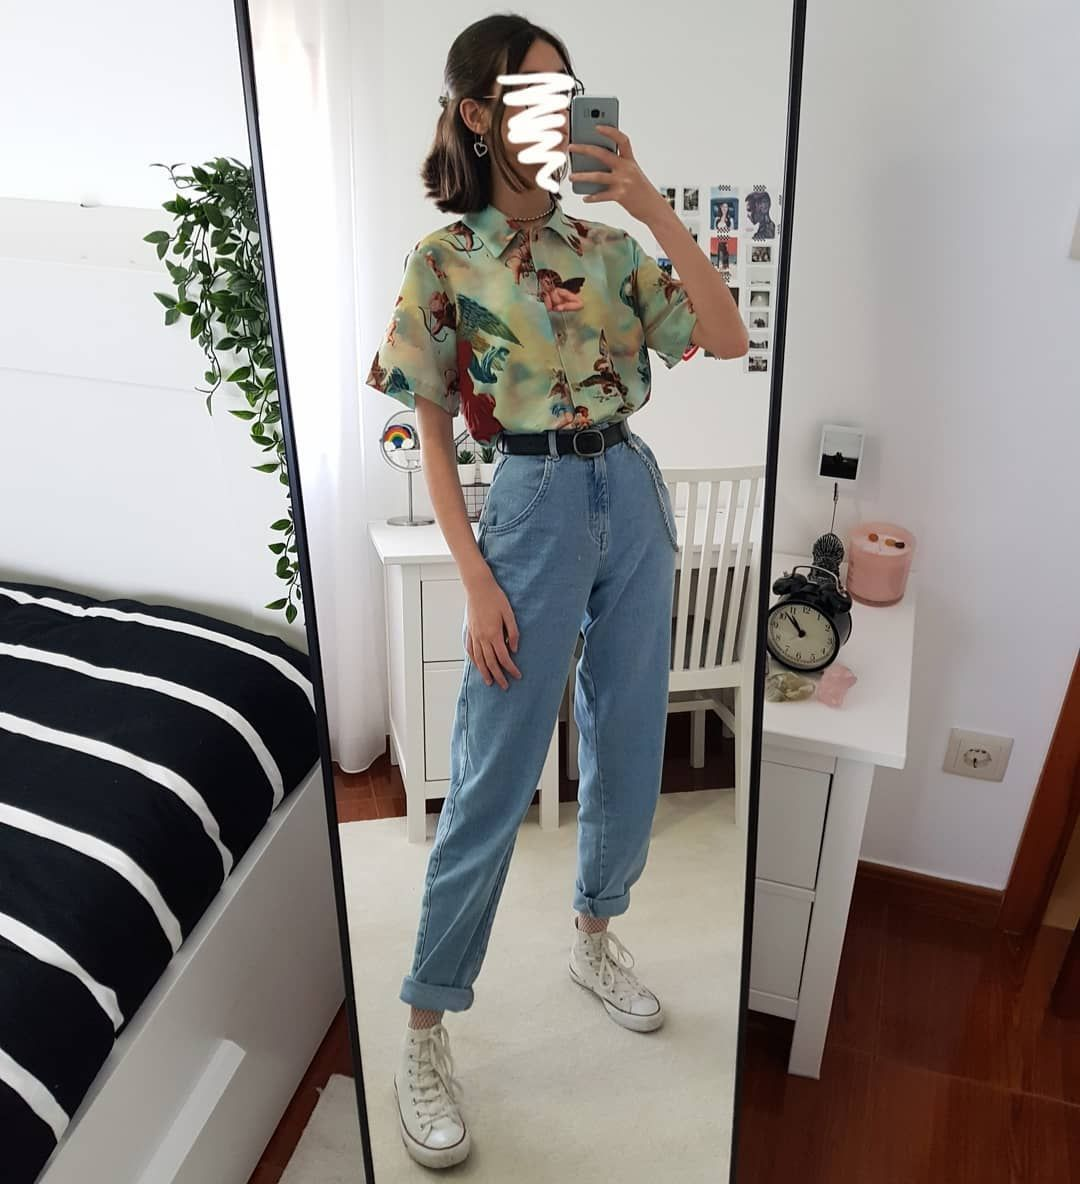 Aesthetic Grunge Vintage On Instagram Would You Rather Wear 1 Or 2 D In 2020 90s Fashion Outfits Fashion Inspo Outfits Aesthetic Clothes